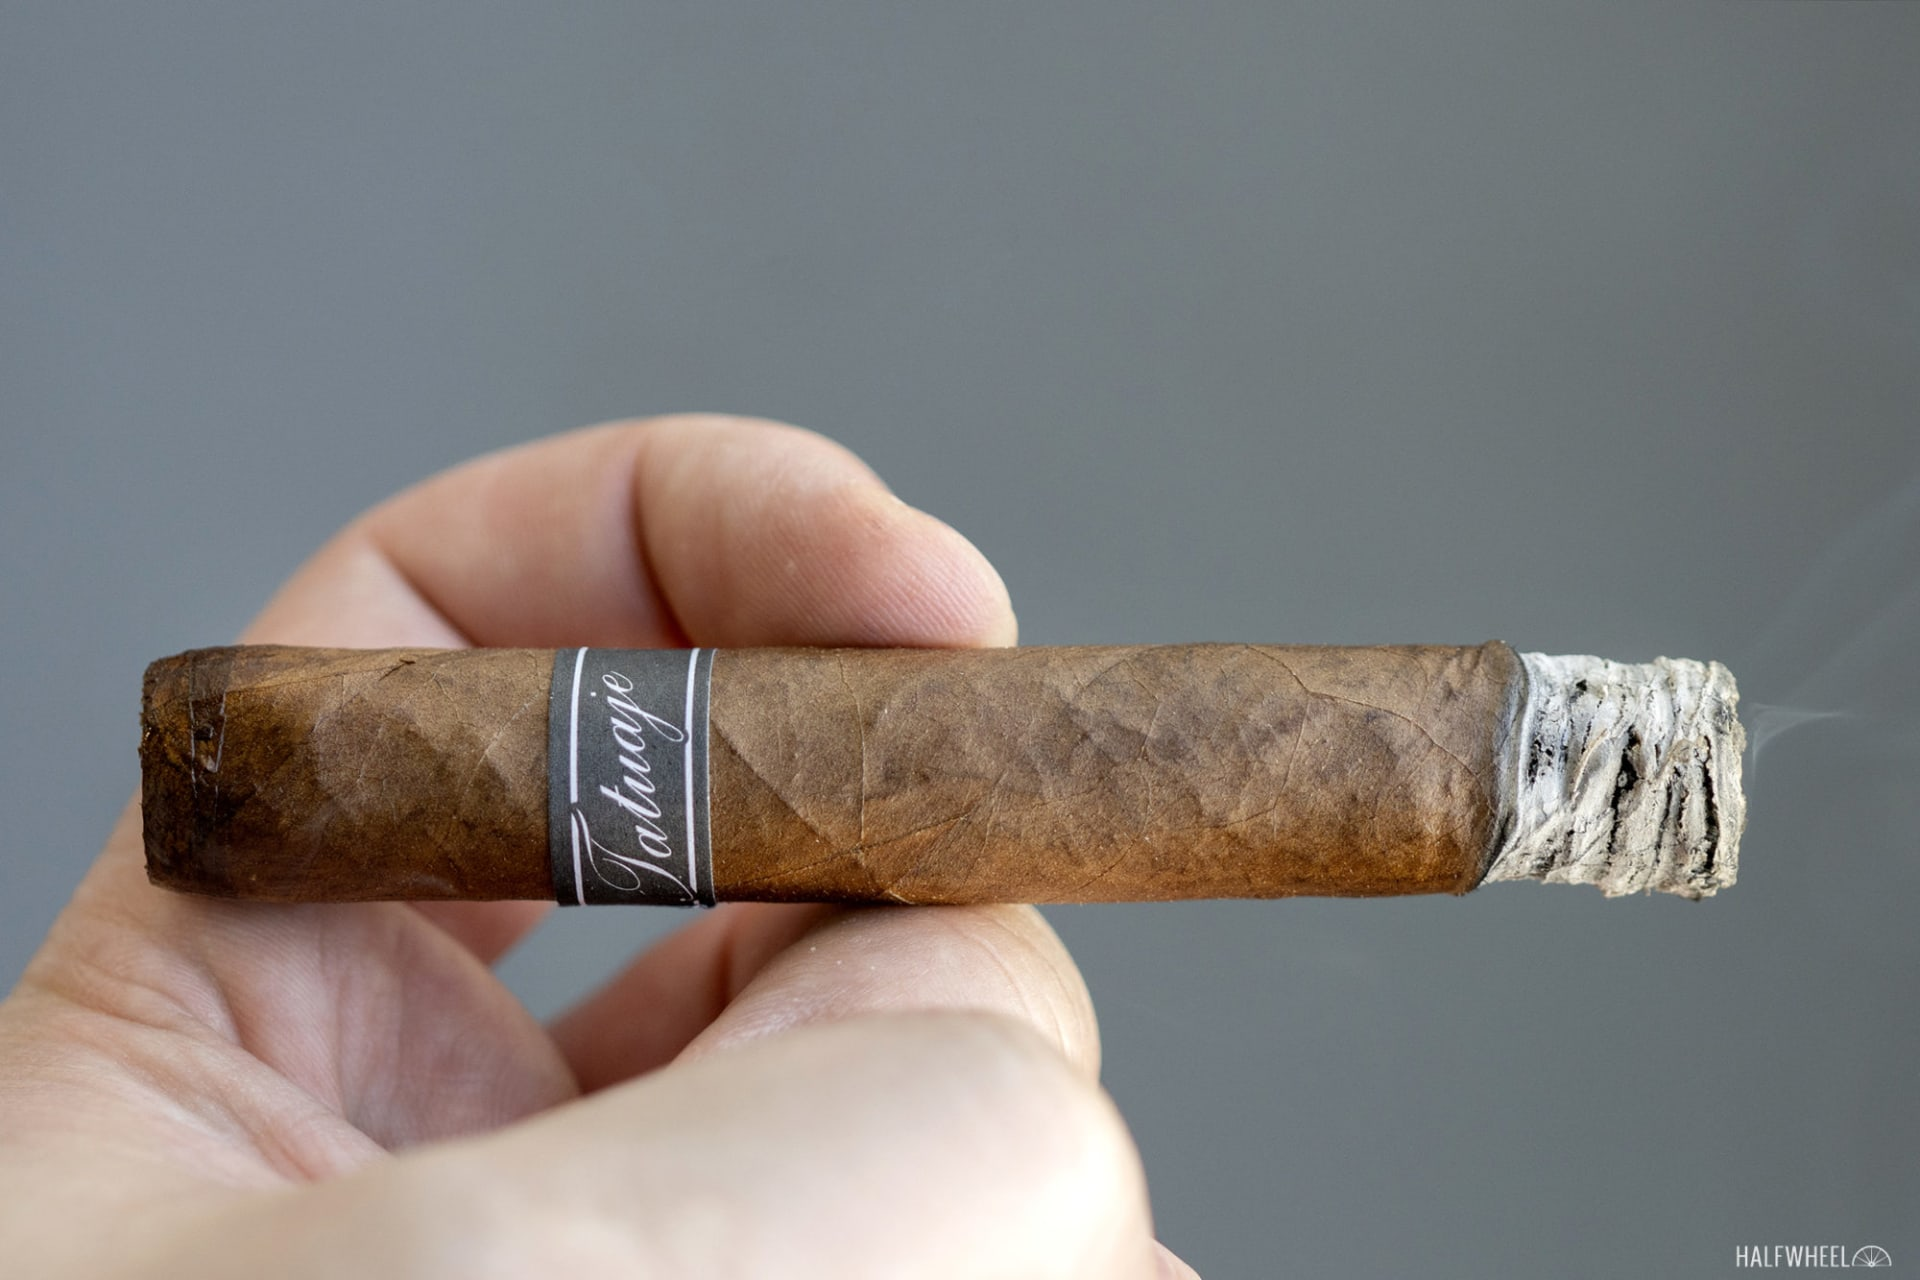 Tatuaje Black Label Petite Corona BC Featured Image